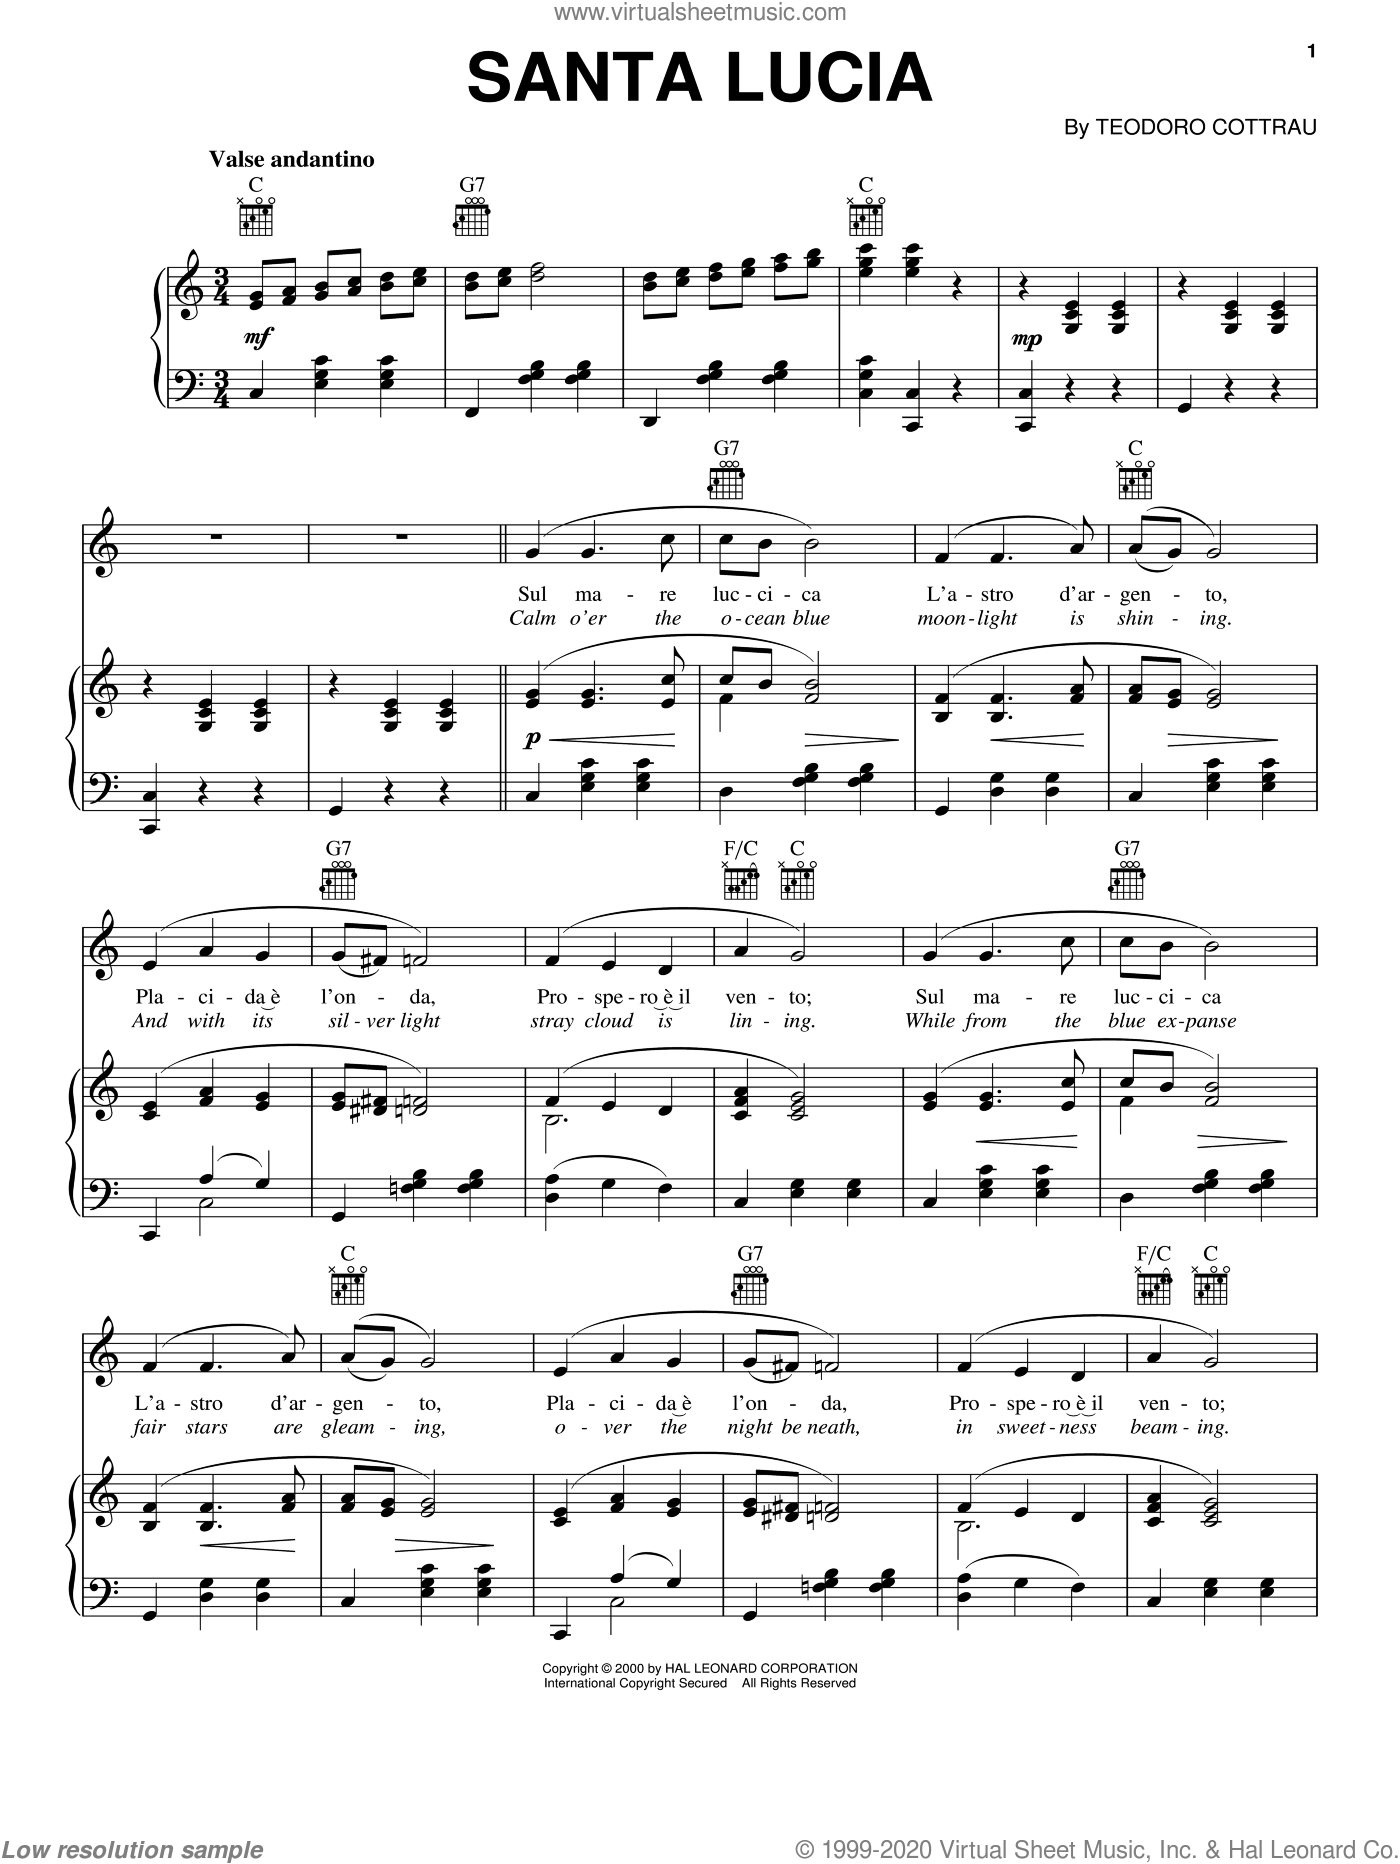 Santa Lucia sheet music for voice, piano or guitar by Teodoro Cottrau, intermediate skill level